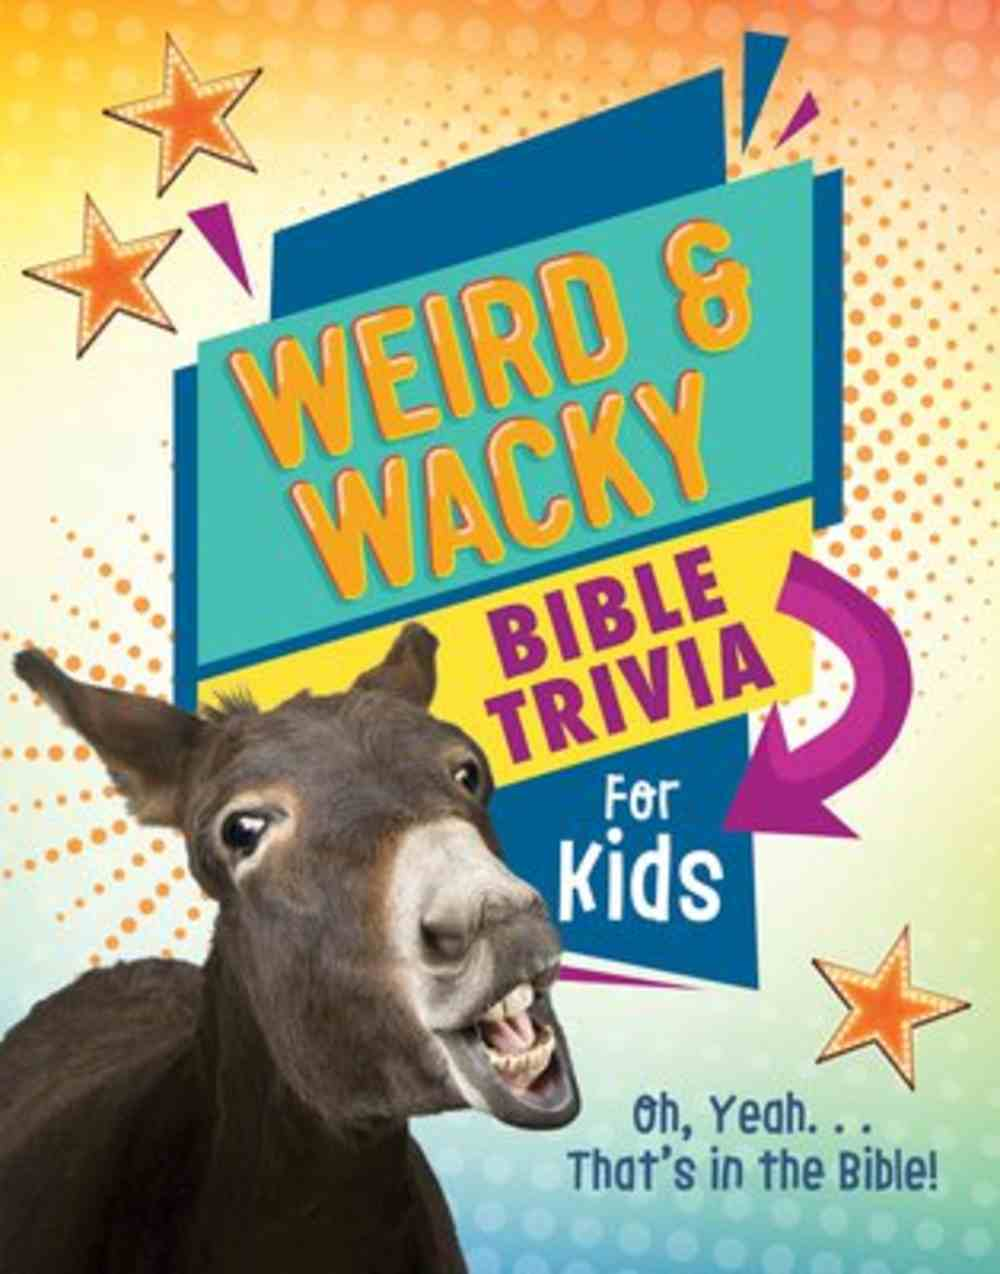 Weird and Wacky Bible Trivia For Kids: Oh, Yeah. . .That's in the Bible! Paperback